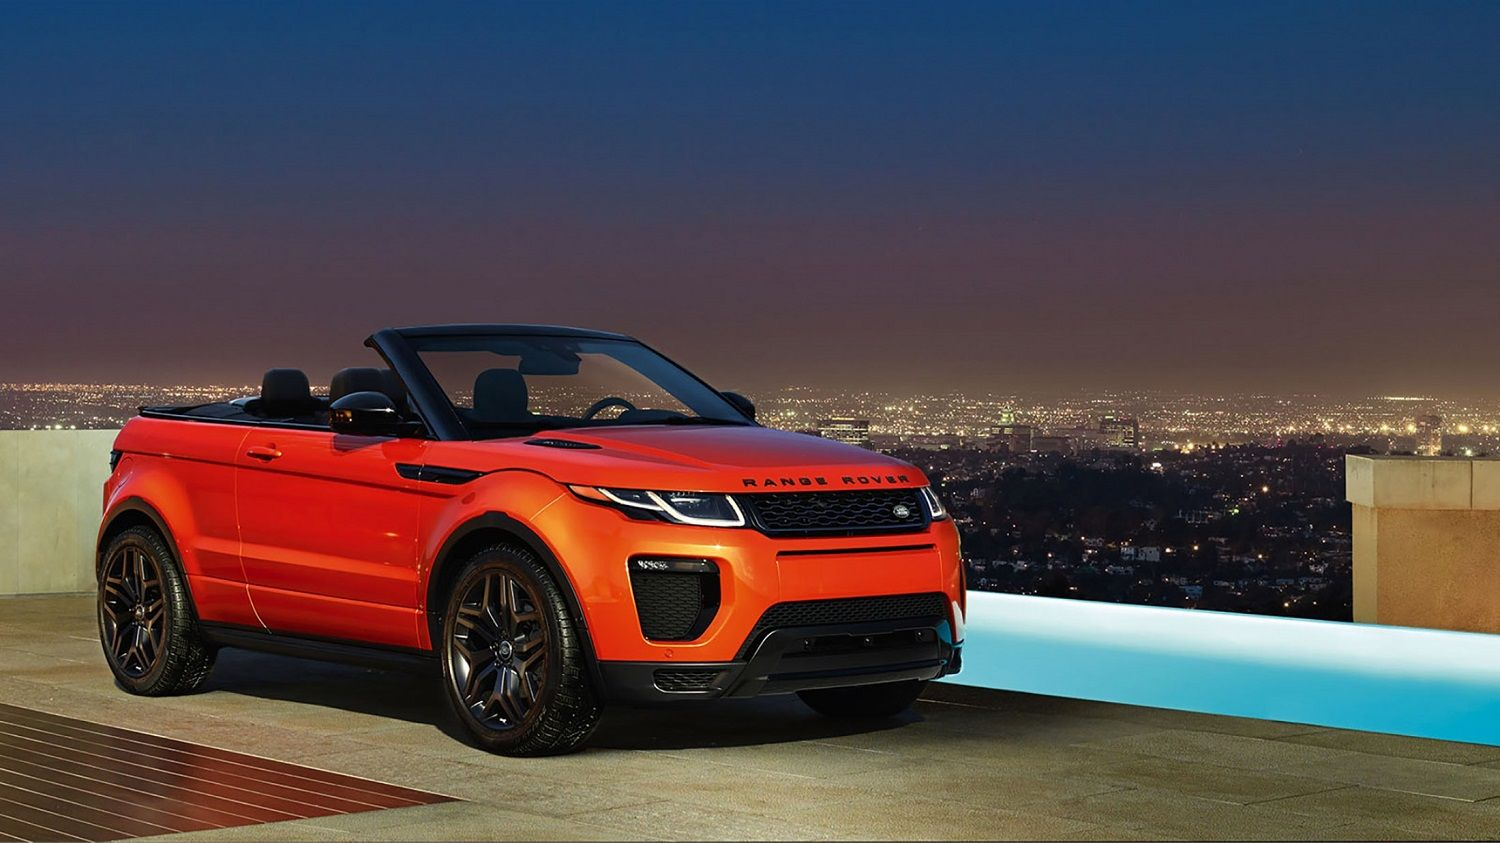 9 Convertible Suvs That Are Actually Badass 1 We Wouldn T Be Caught Dead In